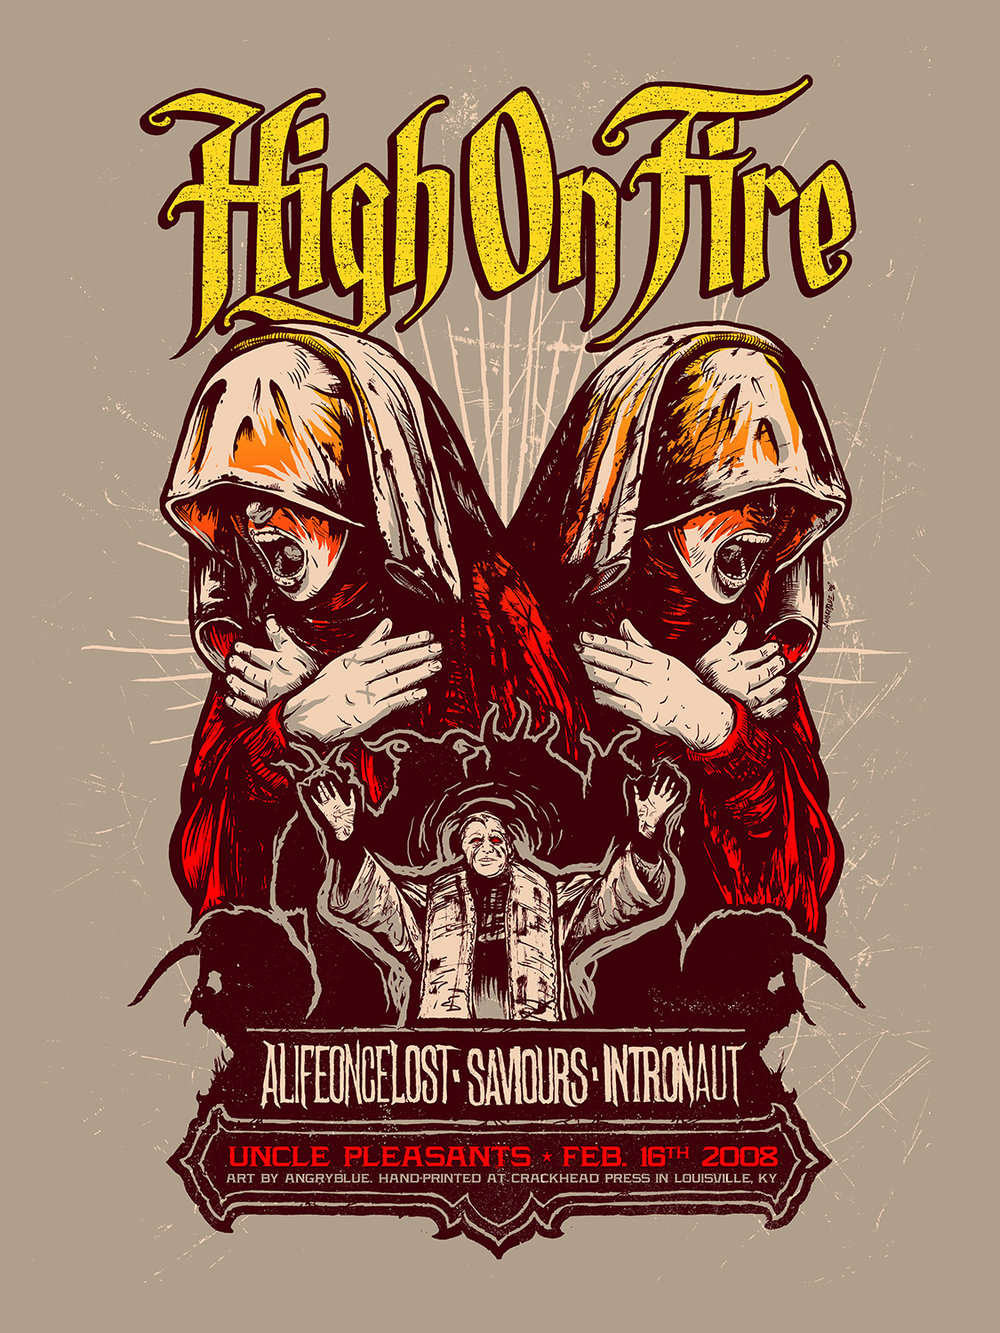 High on fire poster by Angryblue